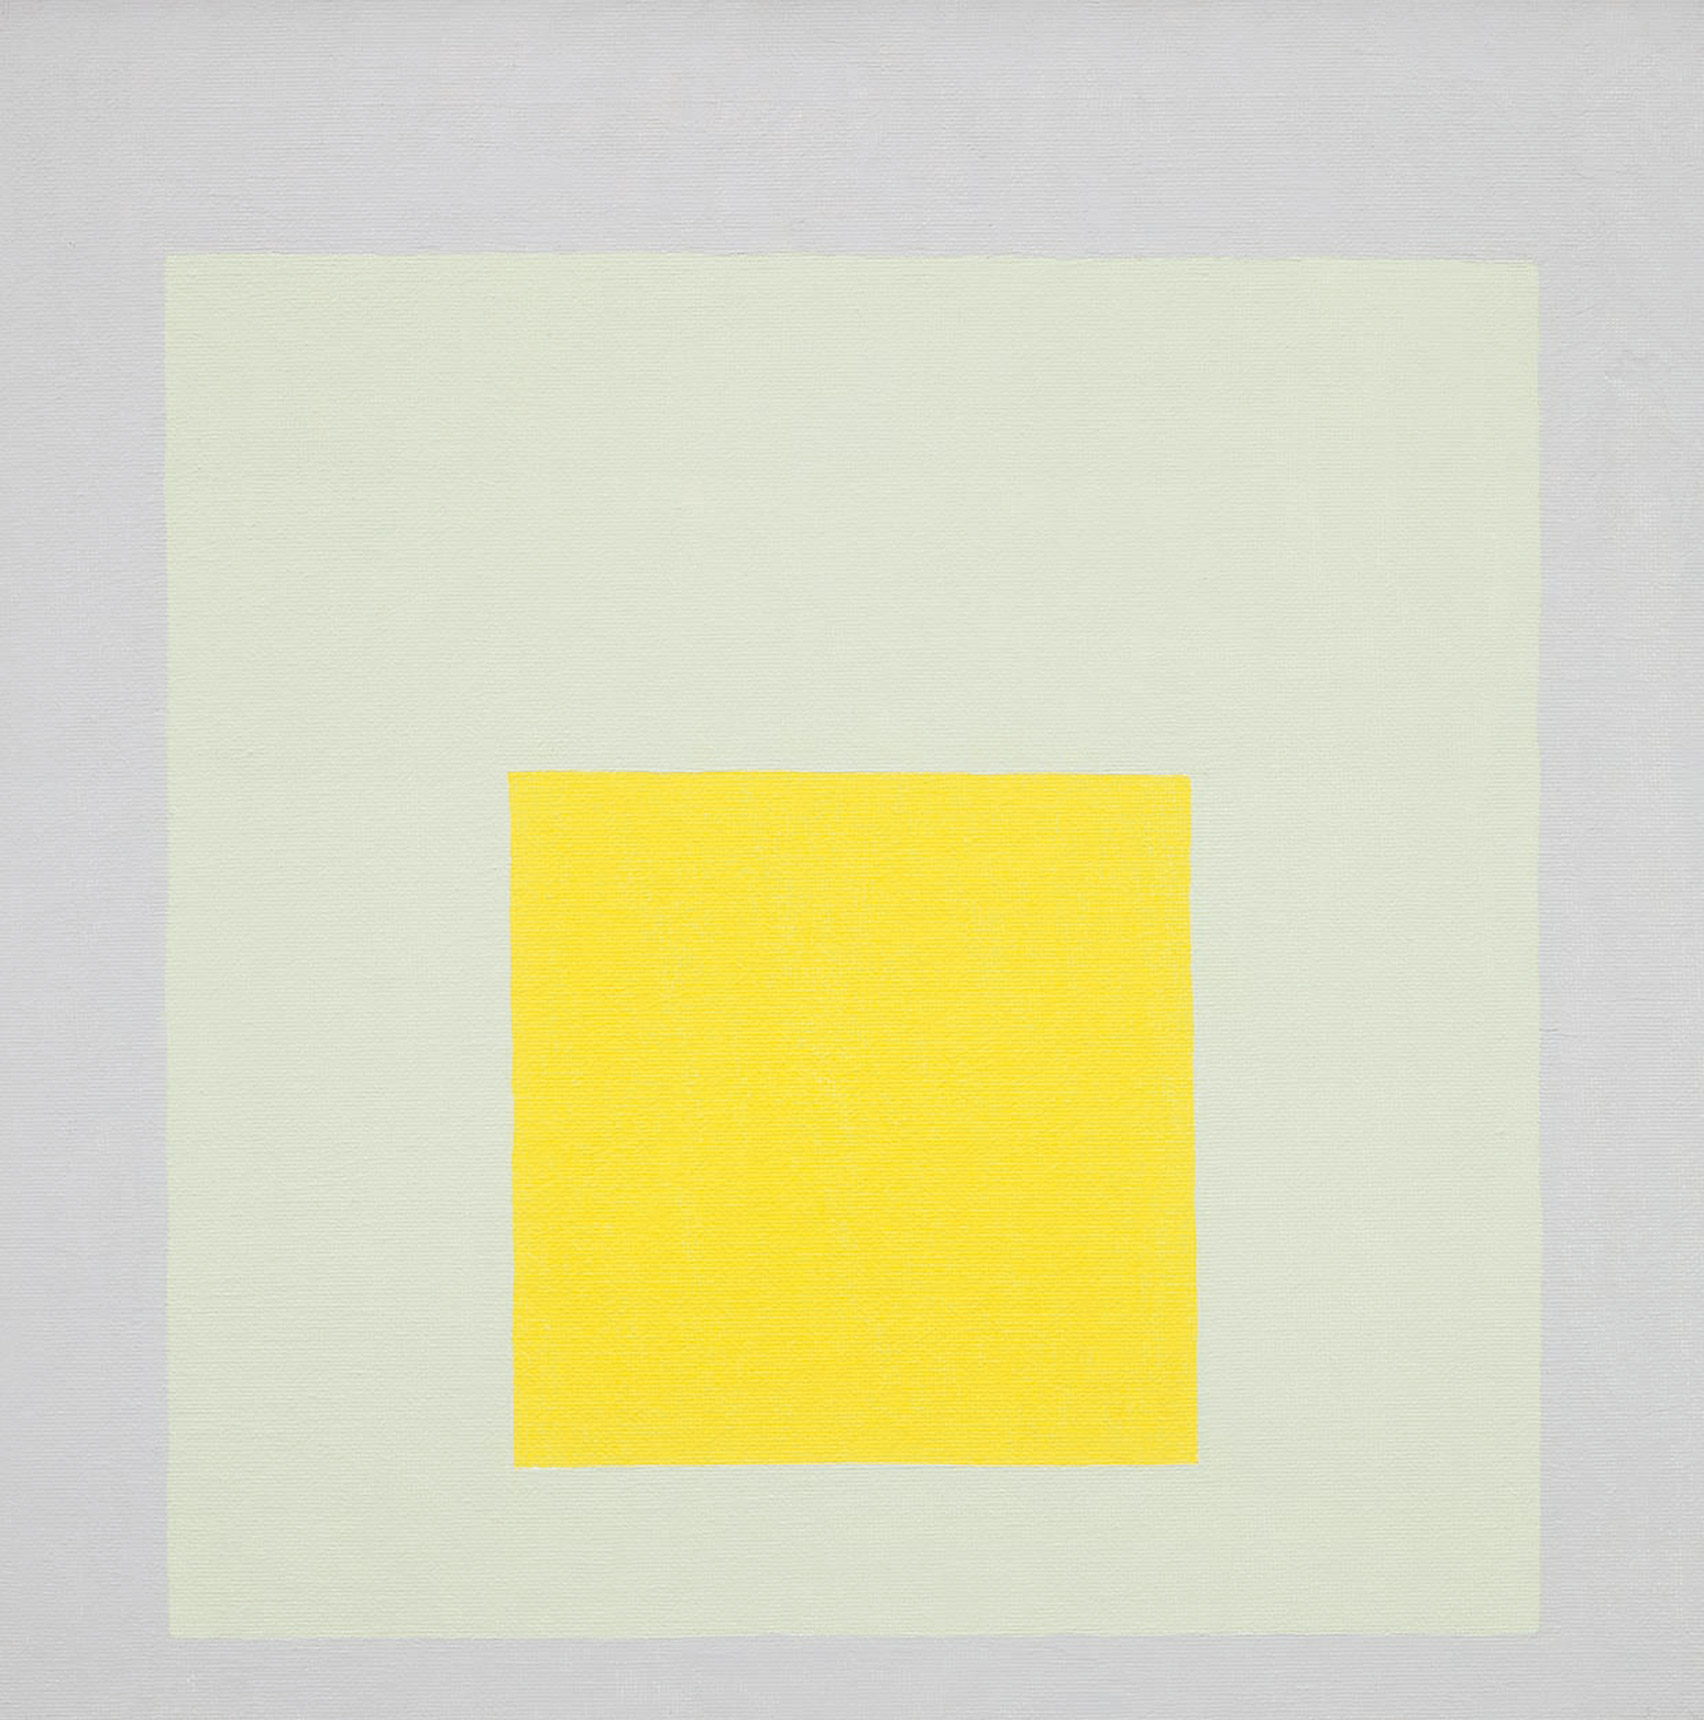 Study for Homage to the Square: Impact by Josef Albers, 1965, Picture credit: © 2020 The Josef and Anni Albers Foundation/Artists Rights Society (ARS), New York/DACS, London / Photo: Tim Nighswander/Imaging4Art